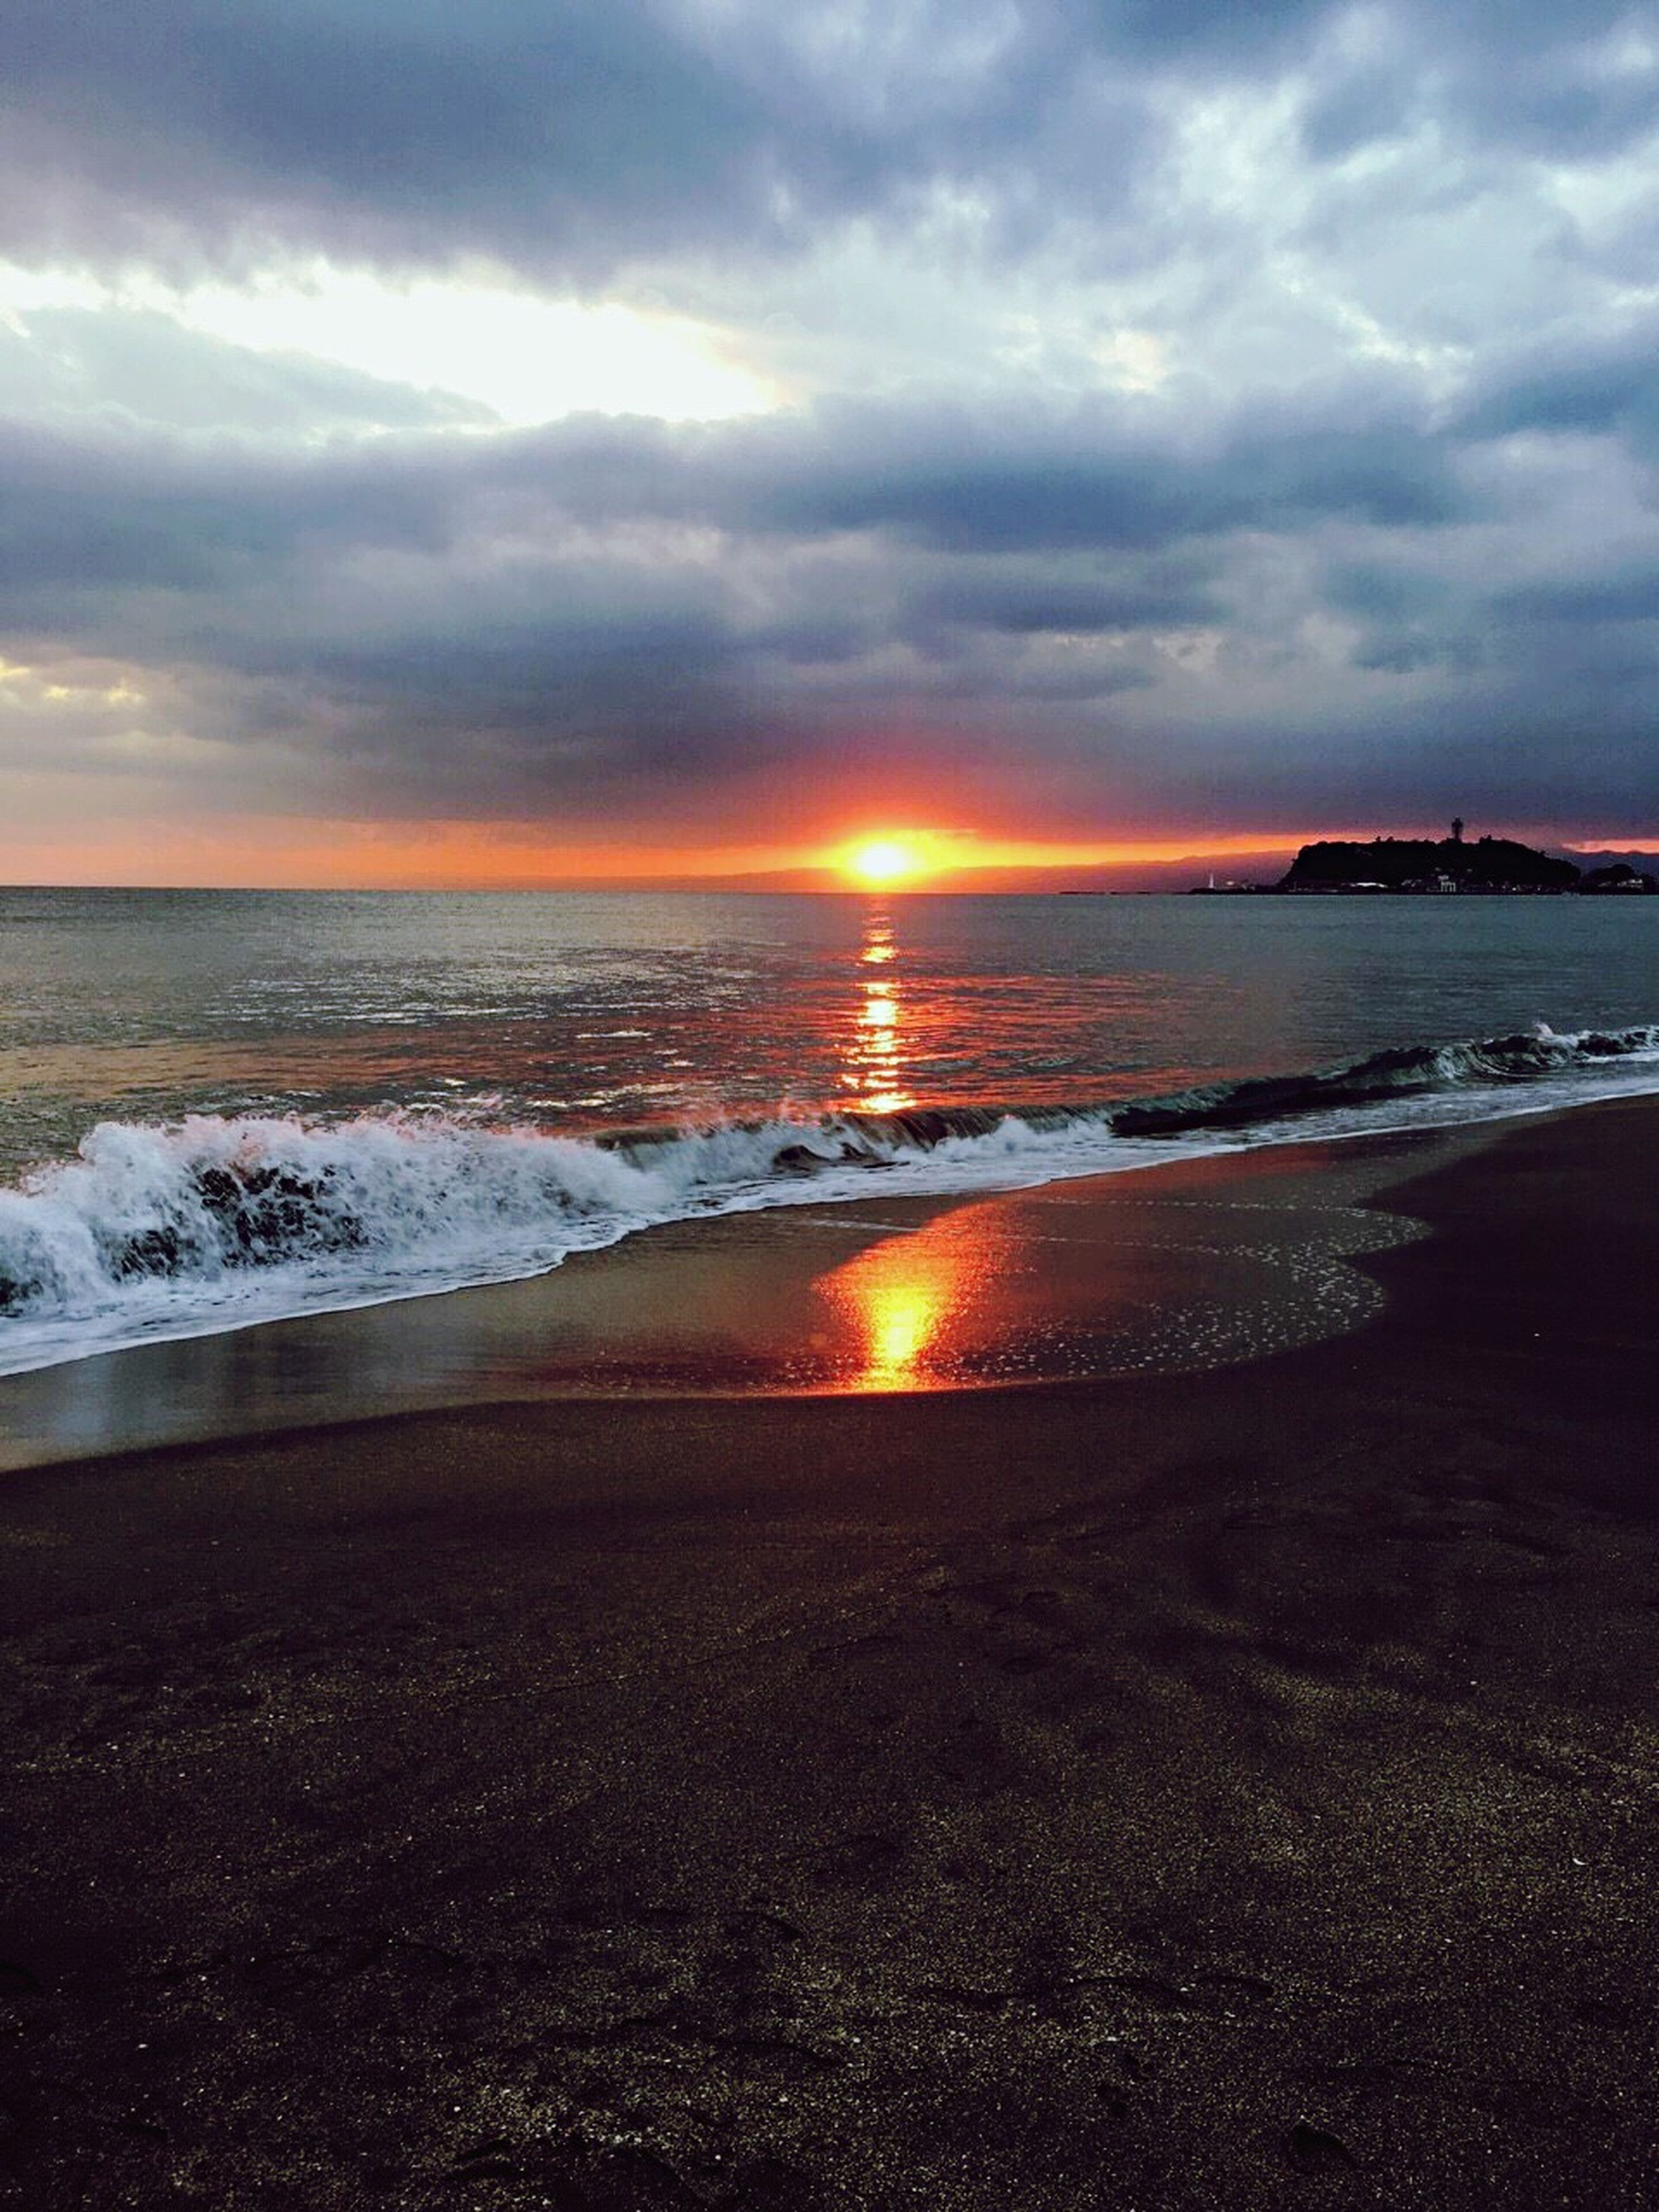 sea, beach, water, sunset, sky, horizon over water, scenics, shore, beauty in nature, tranquil scene, cloud - sky, tranquility, wave, nature, sun, idyllic, cloudy, sand, orange color, cloud